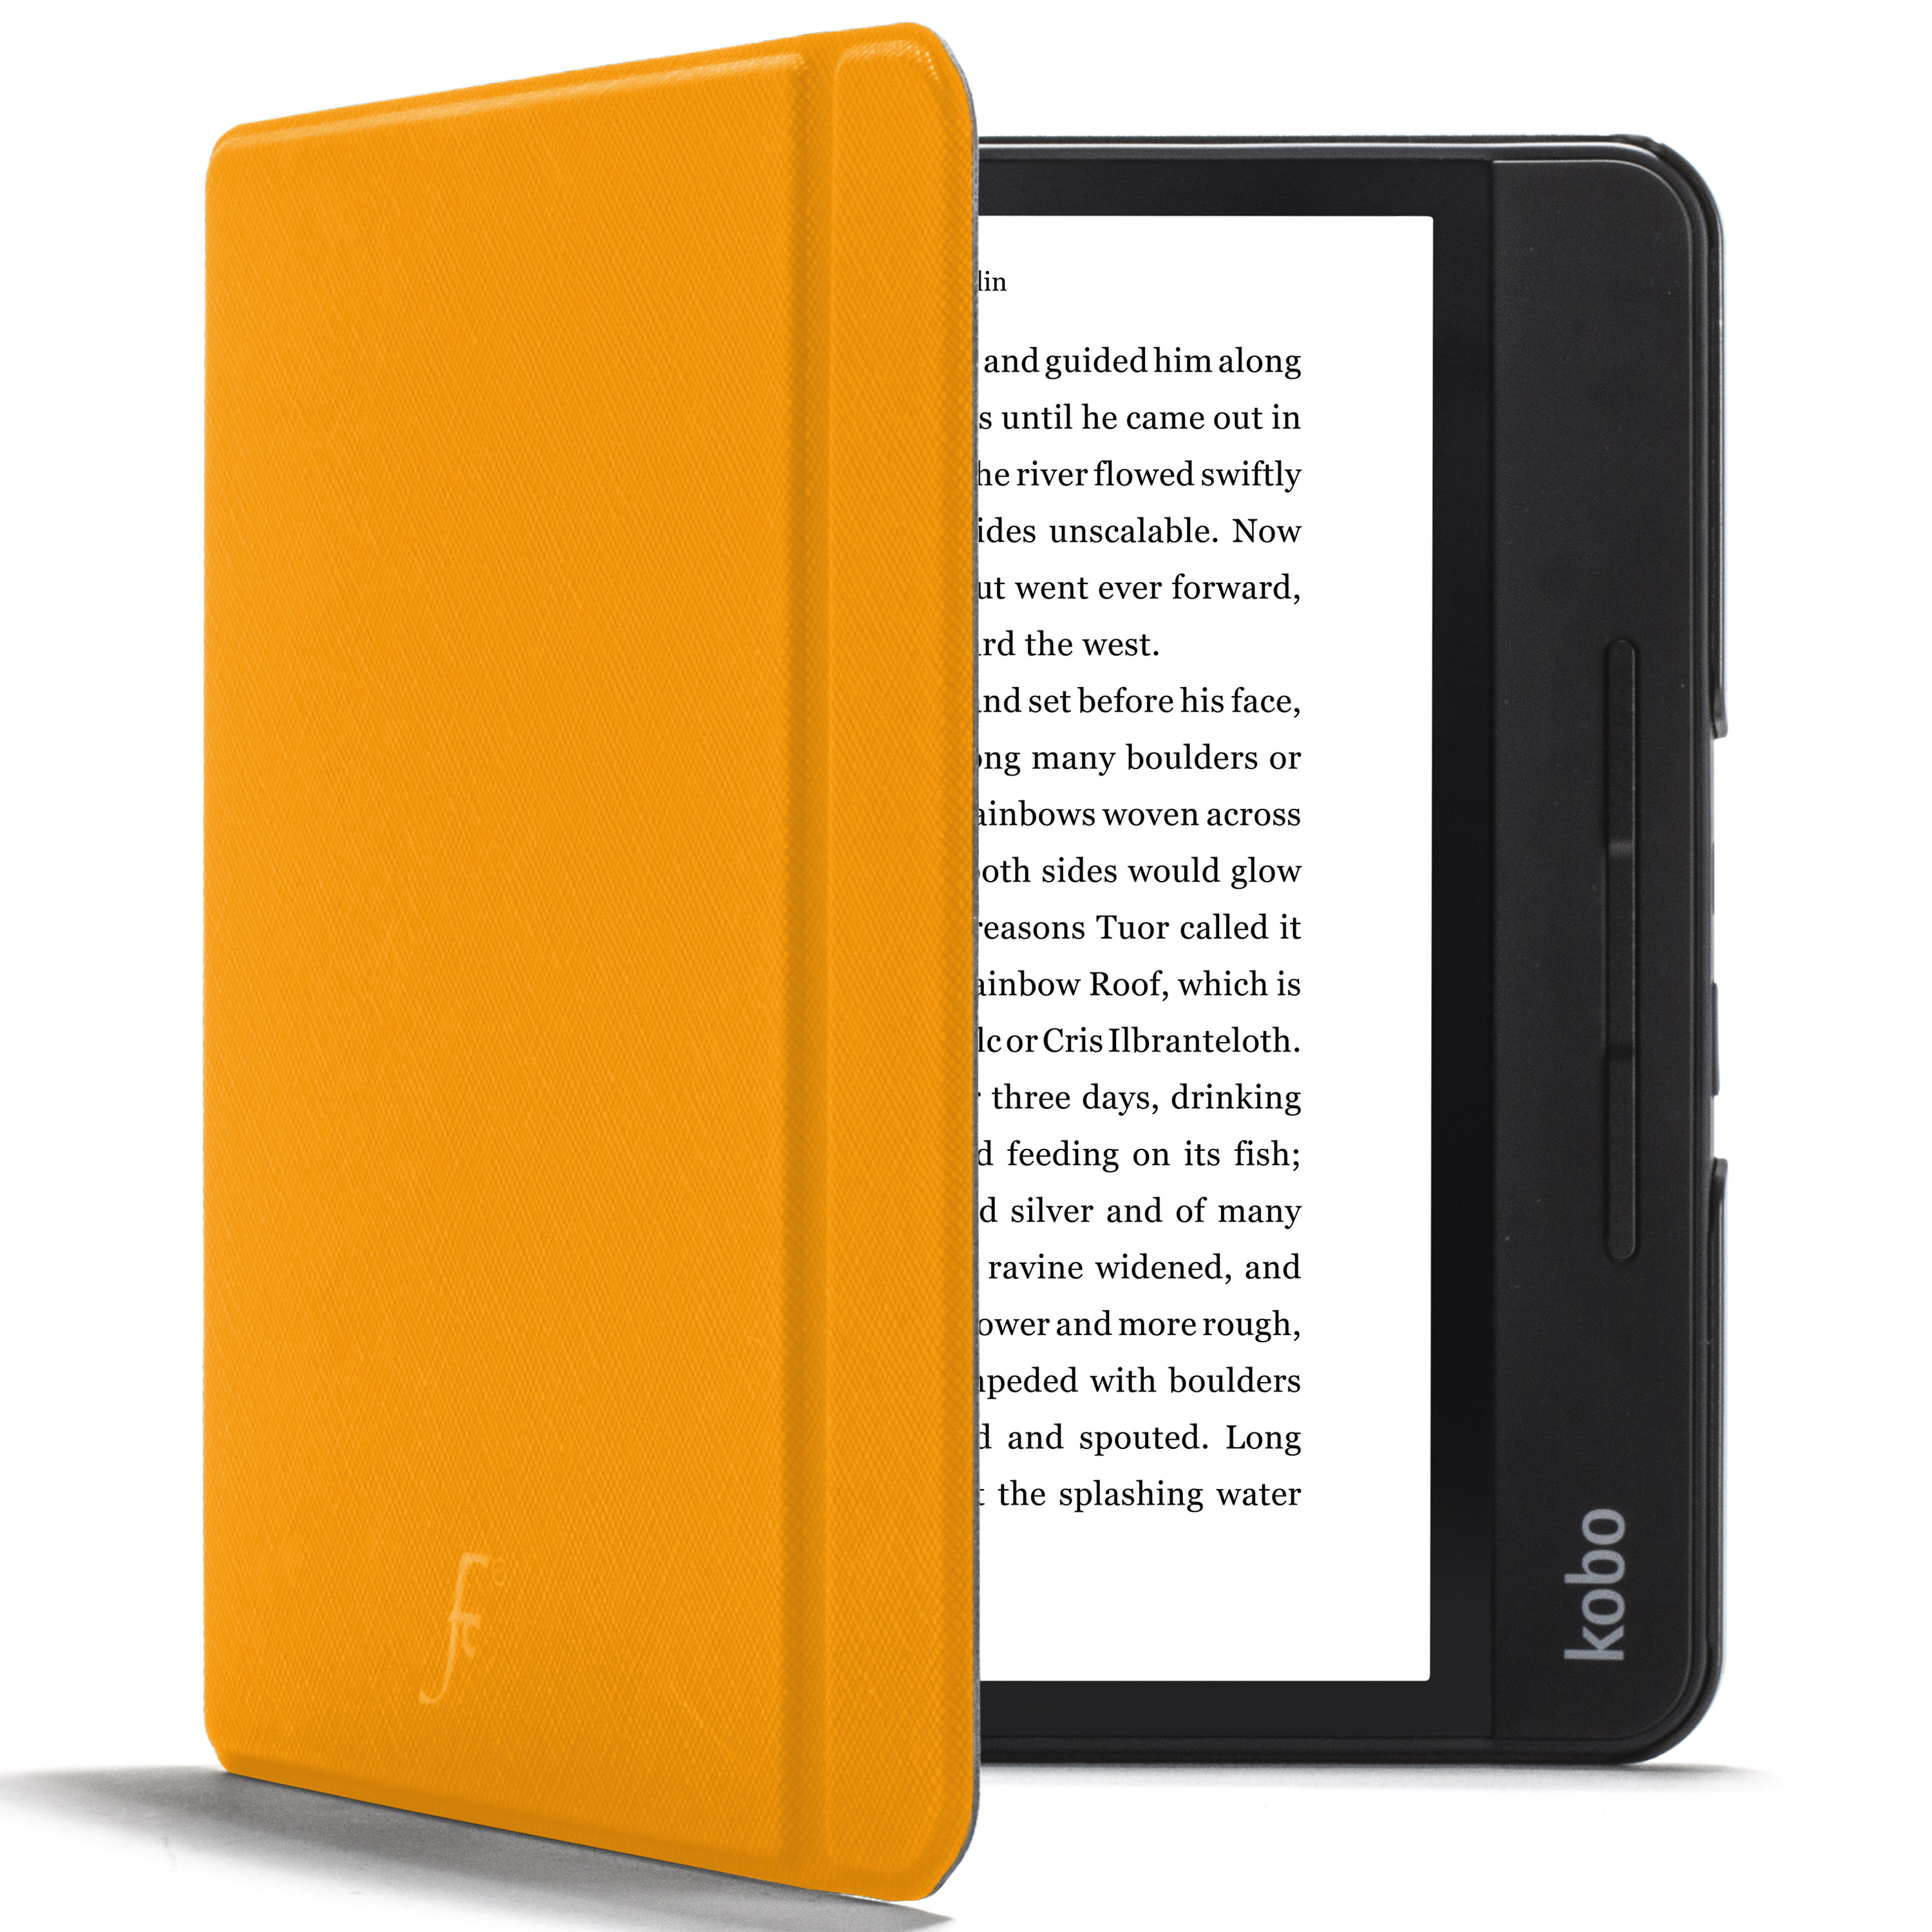 Details about Kobo Forma Case Smart Cover for Kobo forma 2018 Slim  Lightweight Yellow